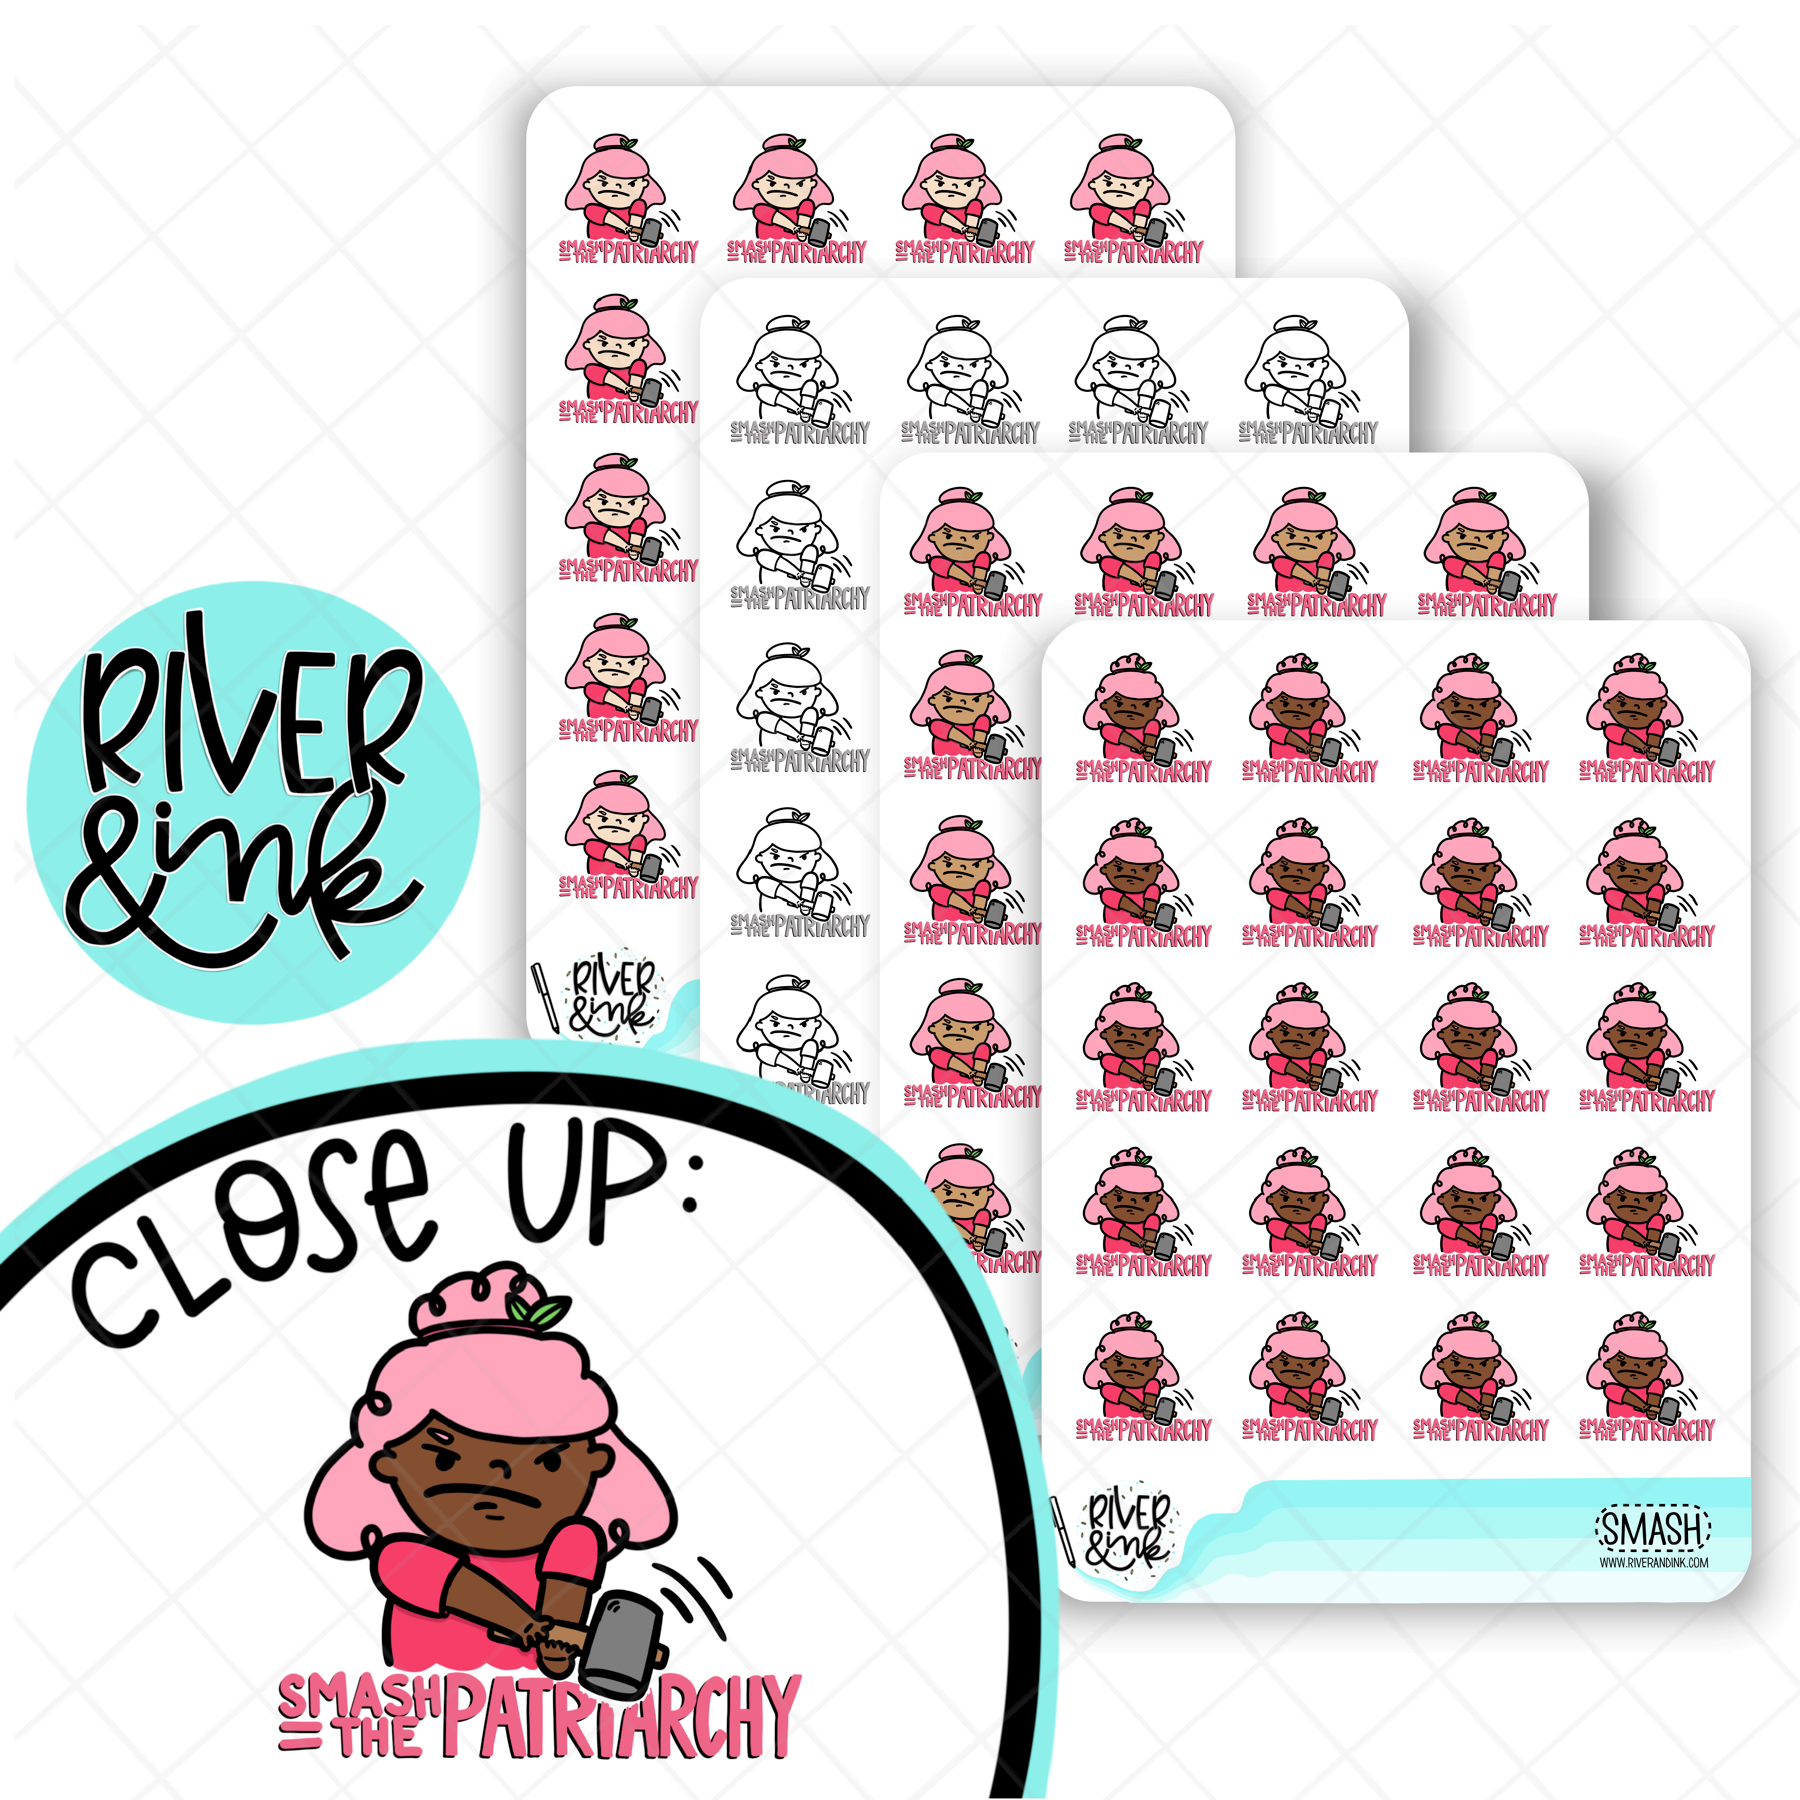 Smash the Patriarchy River Girls Planner Characters | Hand Drawn Planner Stickers